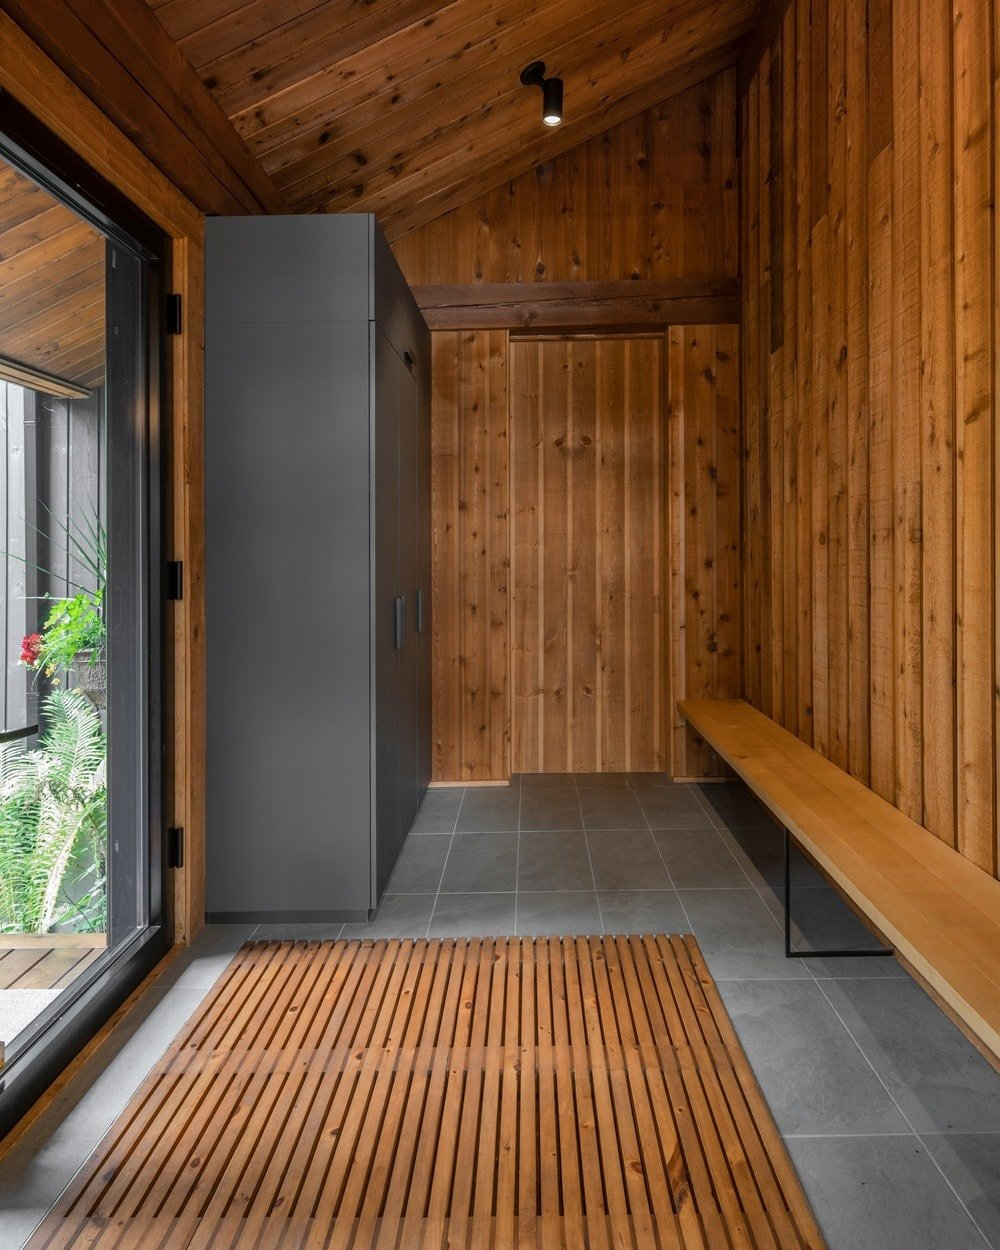 A rustic foyer with a wooden shed ceiling and hardwood walls, along with gray tiles flooring and a long bench seating on the side.